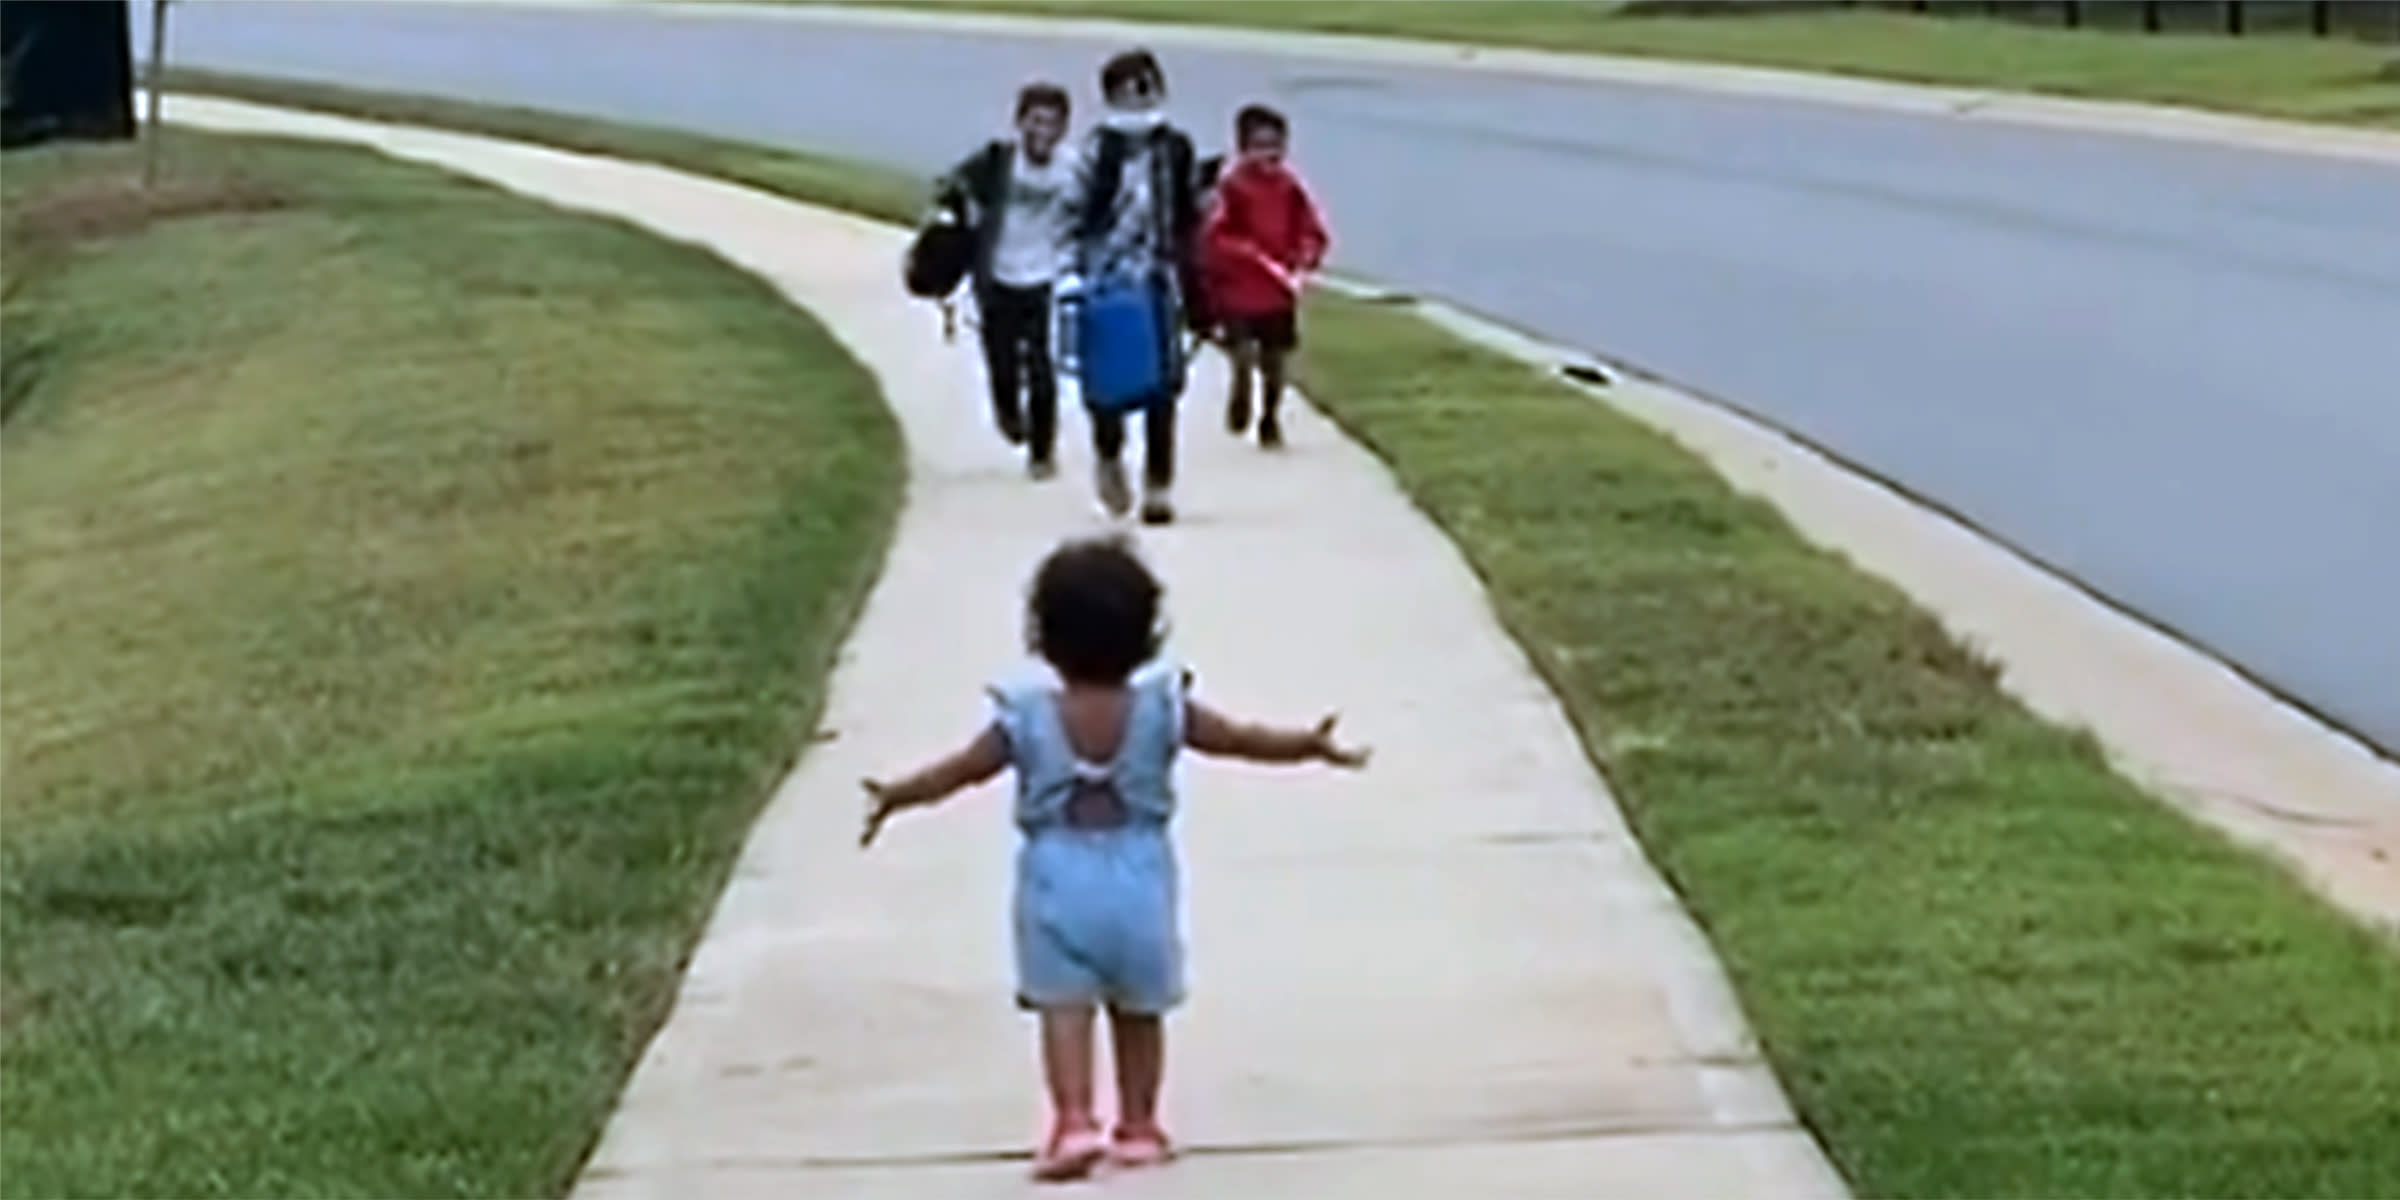 Watch the sweet way this little girl reunites with her big brothers after school